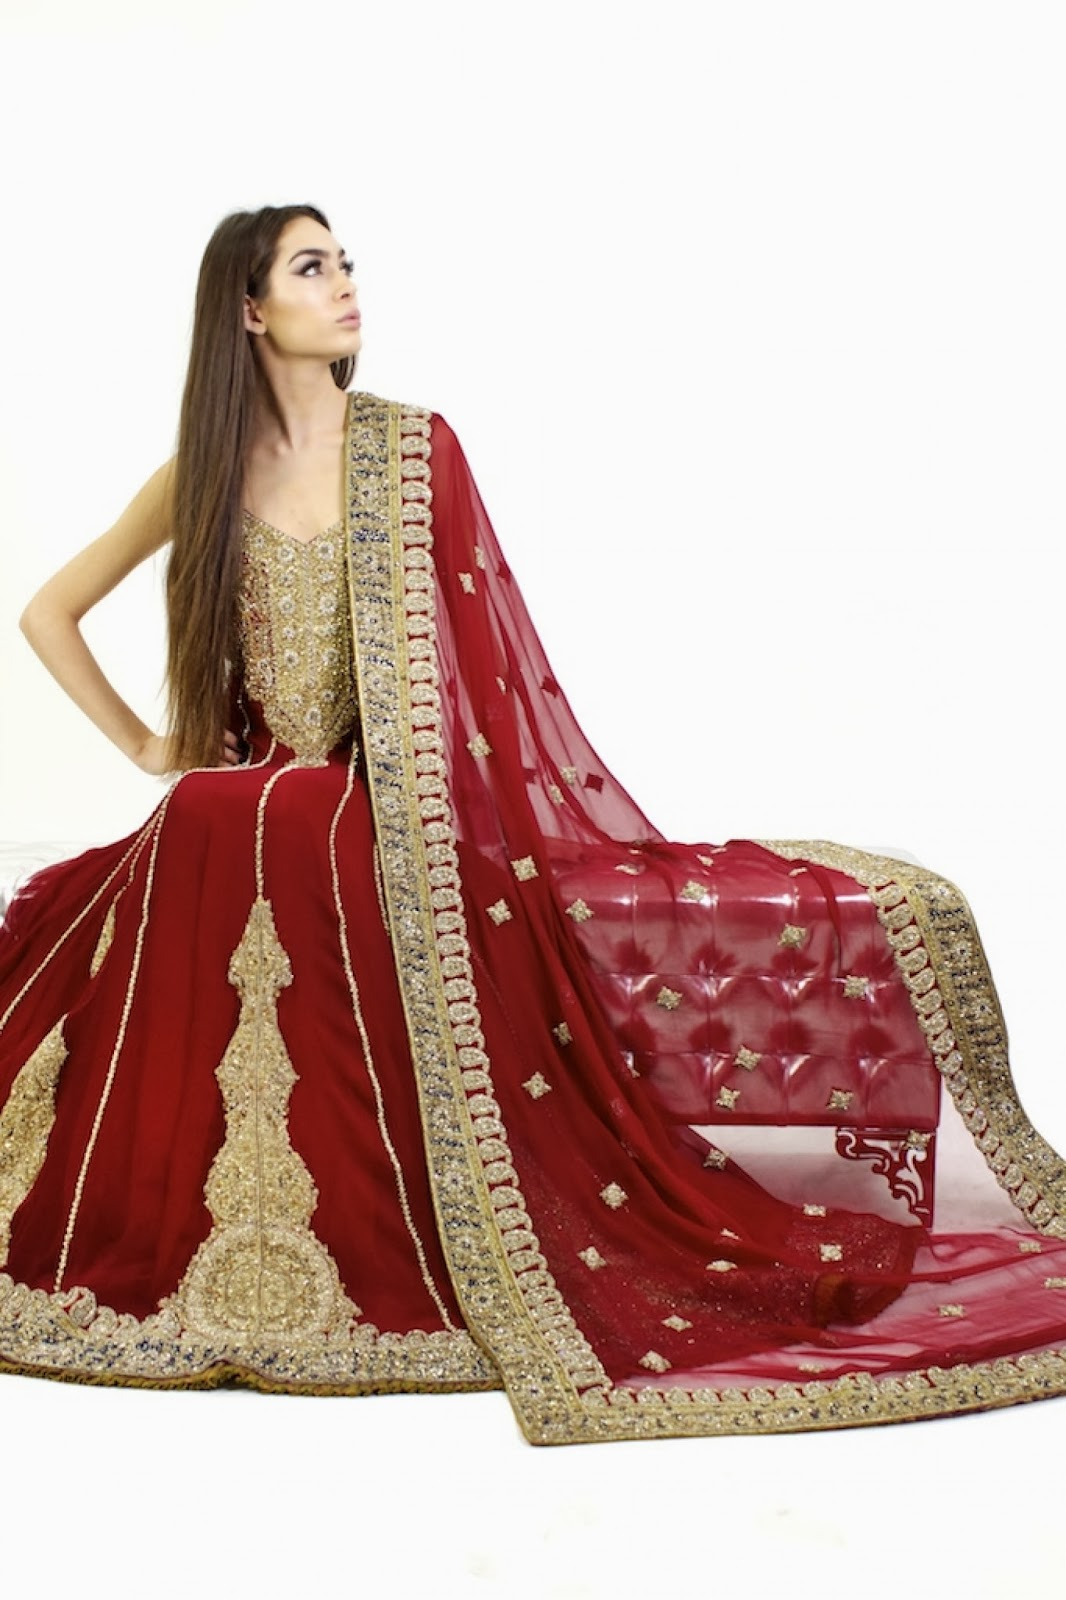 Latest Pakistani & Indian Best Wedding Dresses 2015 | Apna Food Tv